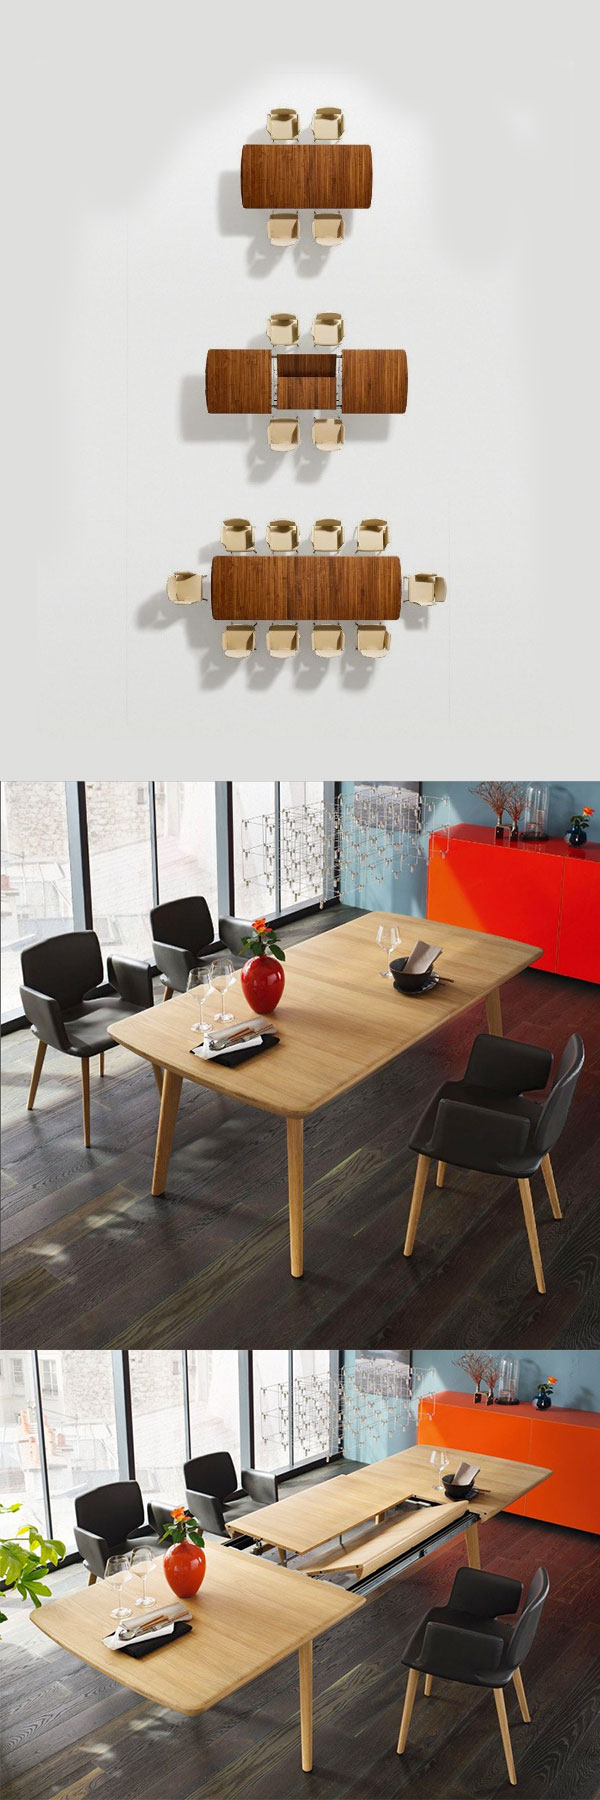 6-Expandable-dining-table-with-chairs